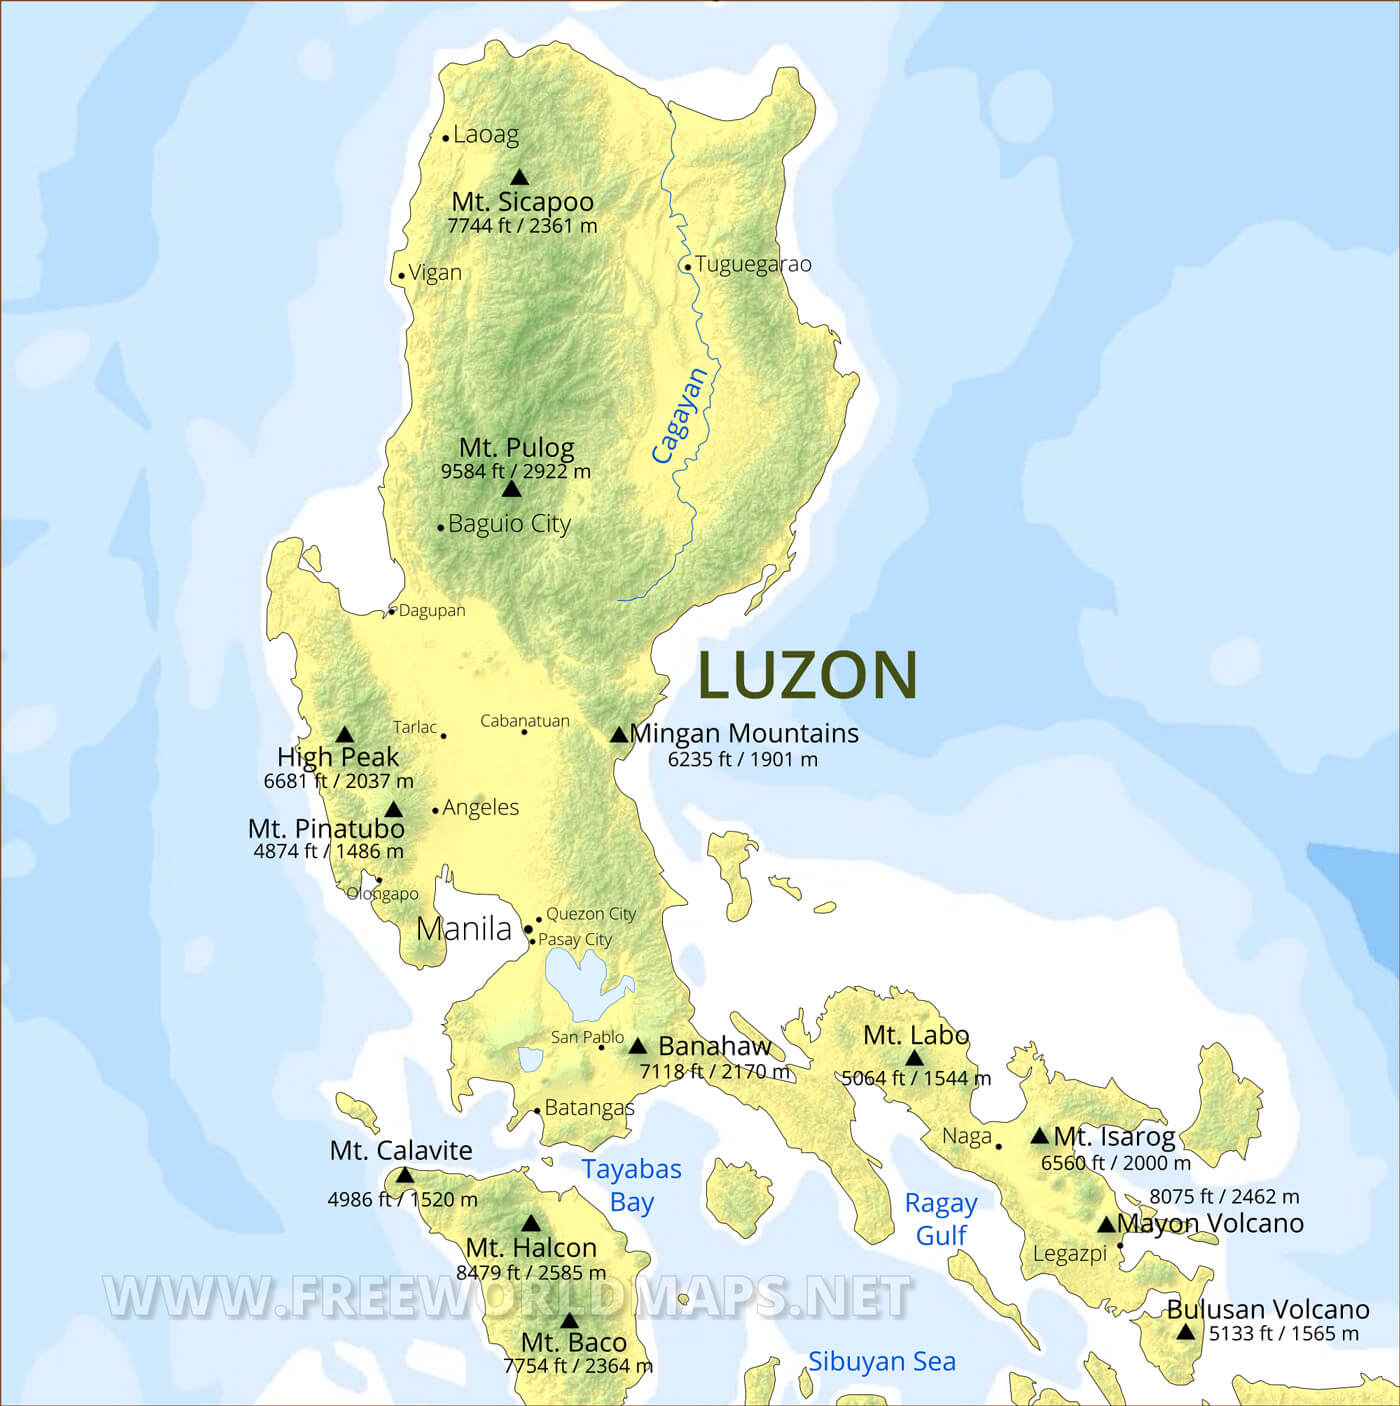 Luzon Maps, Philippines on iloilo city philippines, how big is the philippines, typhoon ruby philippines, hong kong, weather philippines, globe philippines, world war 2 bacolod, history spanish colonization philippines, houses in the philippines, cities in philippines, country philippines, 100 islands philippines, southeast asia, quezon city philippines, chocolate hills bohol philippines, north korea, does the us own the philippines, boracay philippines, manila philippines, south africa, animals philippines, mindanao philippines, cebu philippines, baguio city philippines,